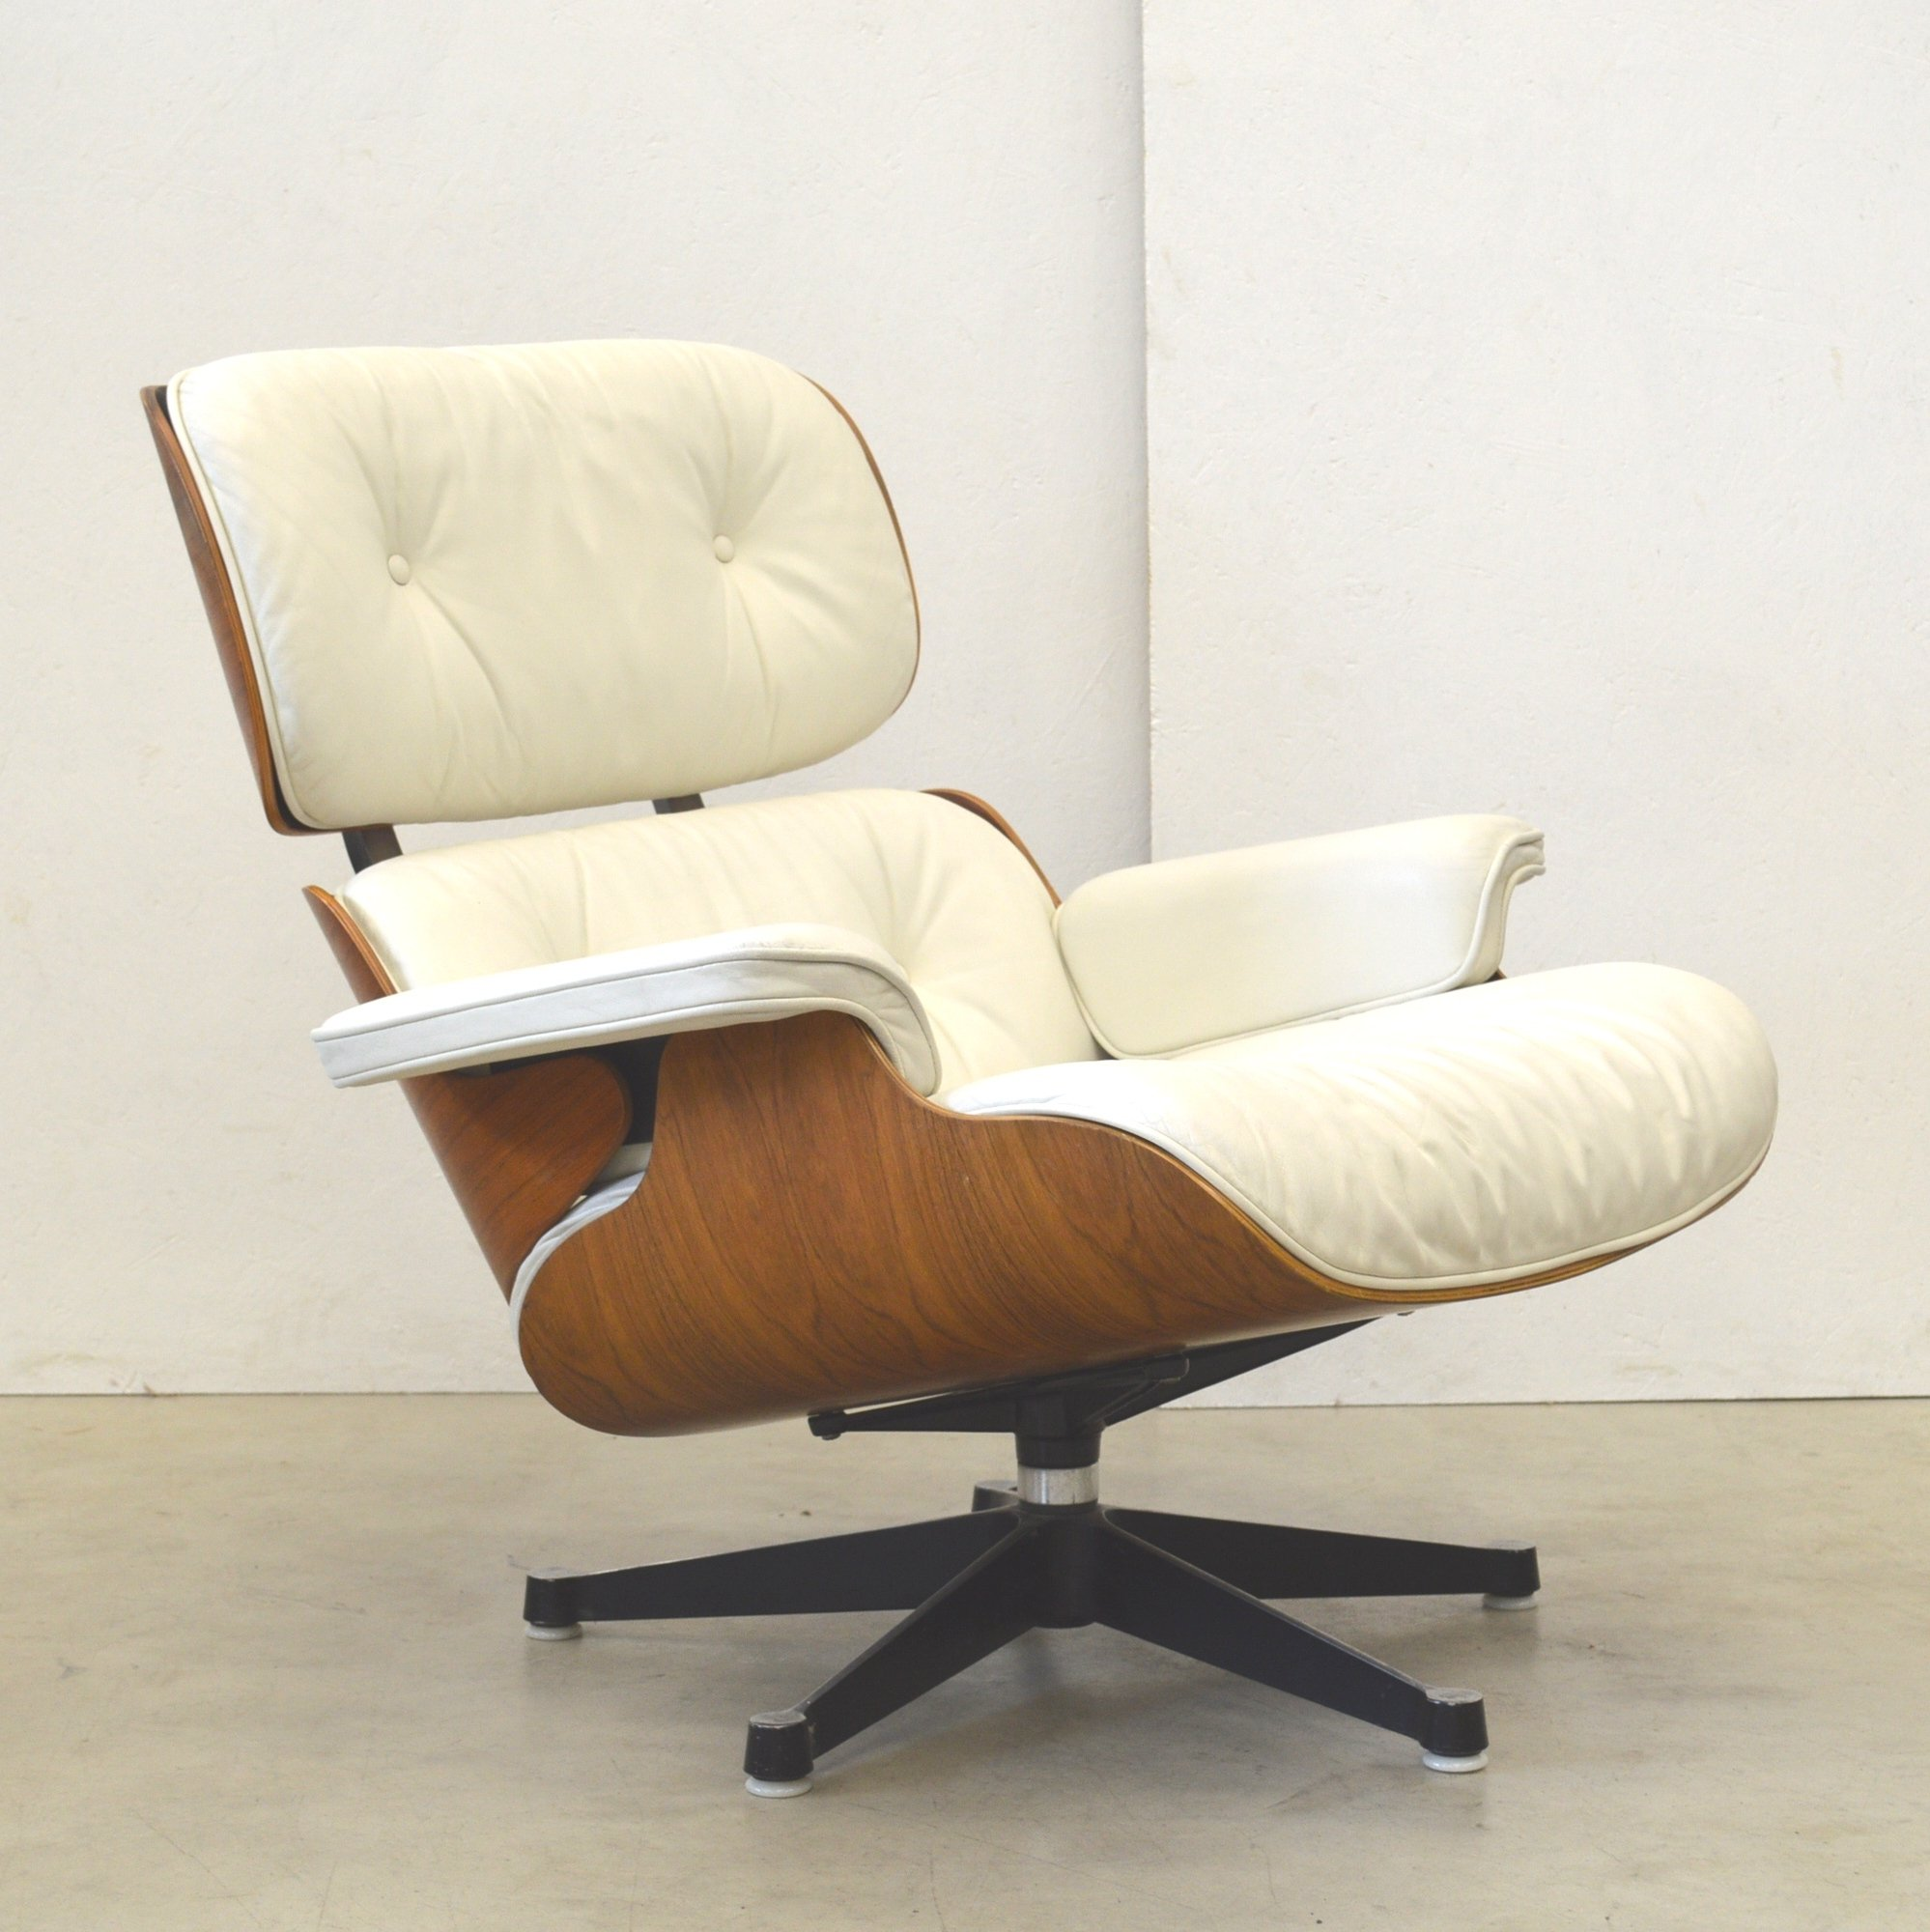 Rosewood lounge chair by Charles & Ray Eames for Herman Miller 1970s